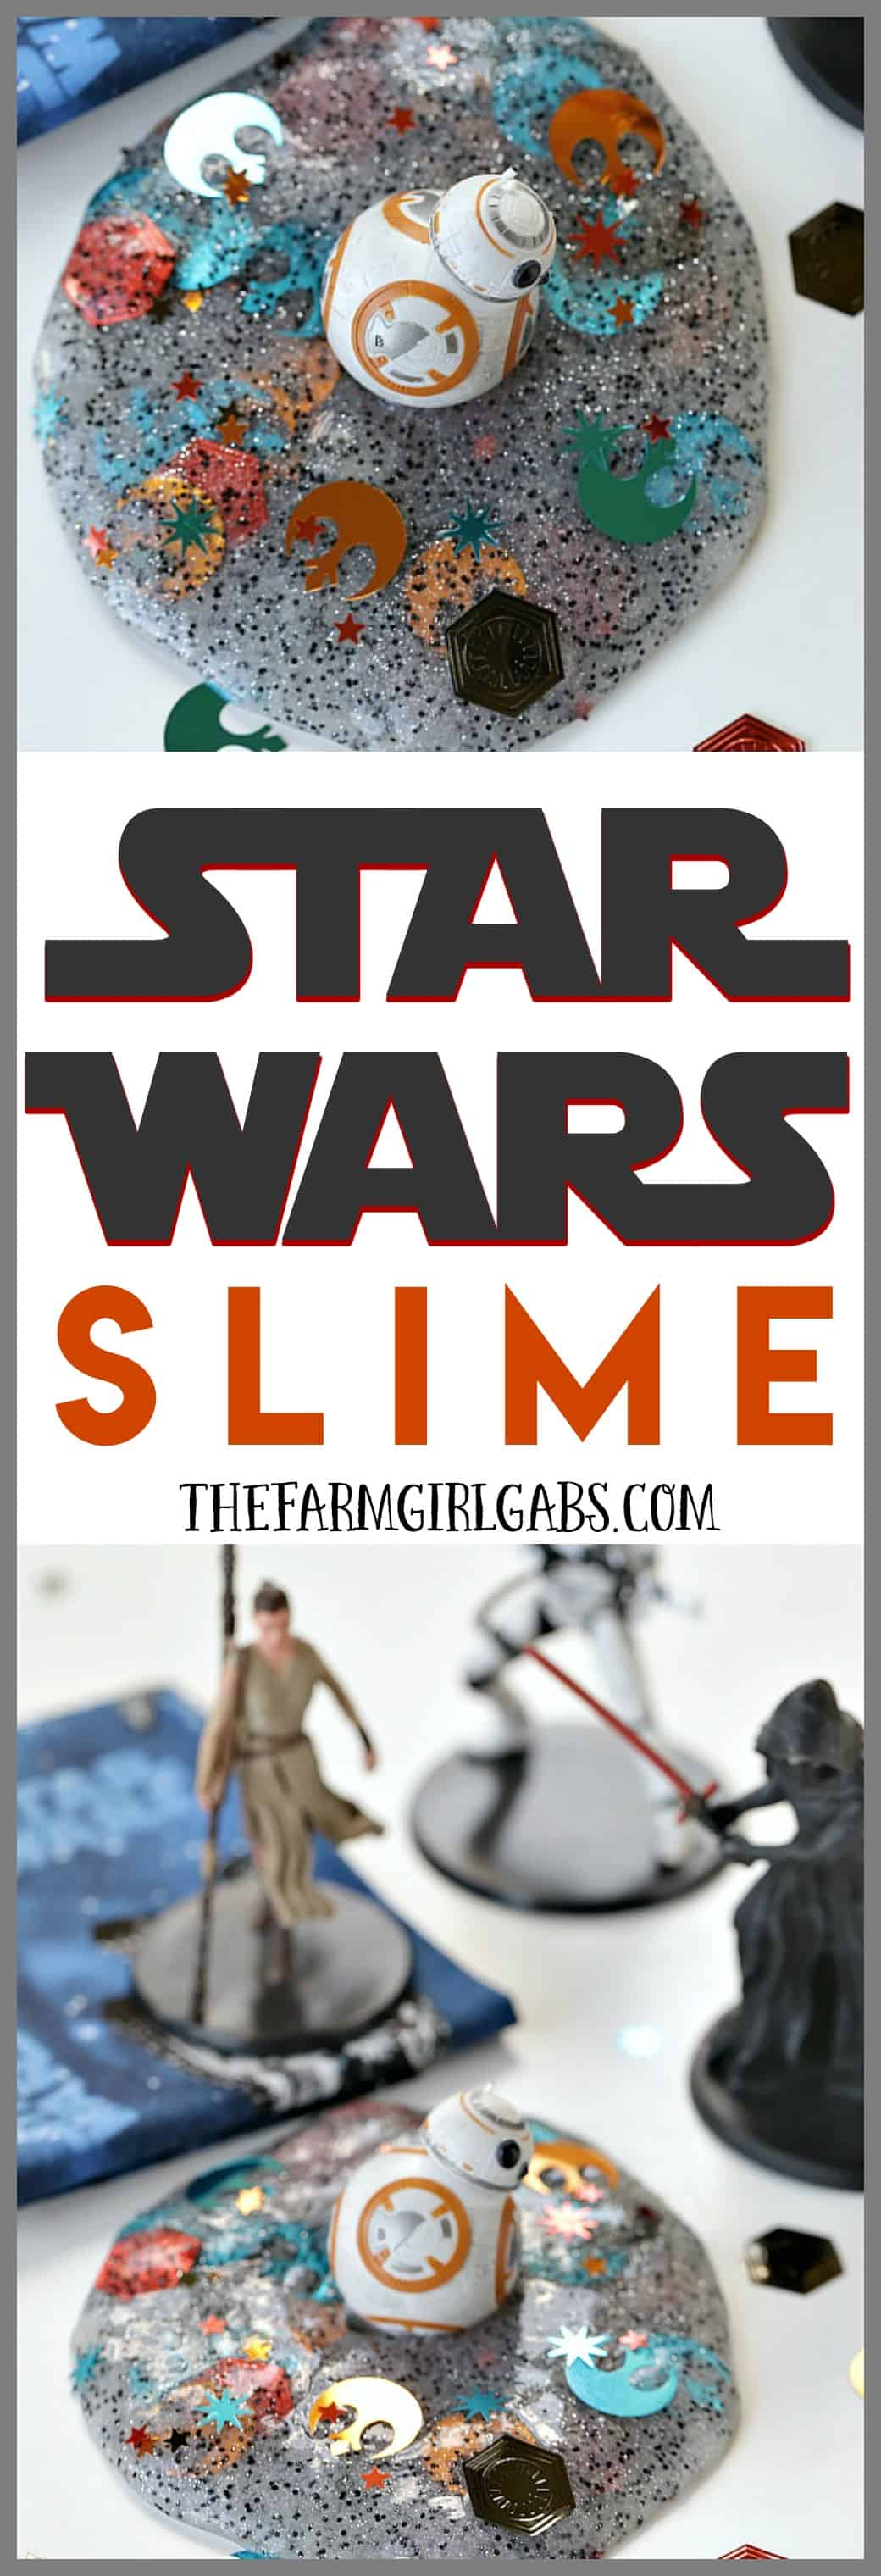 The force is strong with this slime project! You'll rule the galaxy with this easy DIY Star Wars Slime. #StarWarsCraft #TheLastJedi #Disney #StarWars #DisneyCraft #Slime #SlimeRecipe #Crafts #DIY